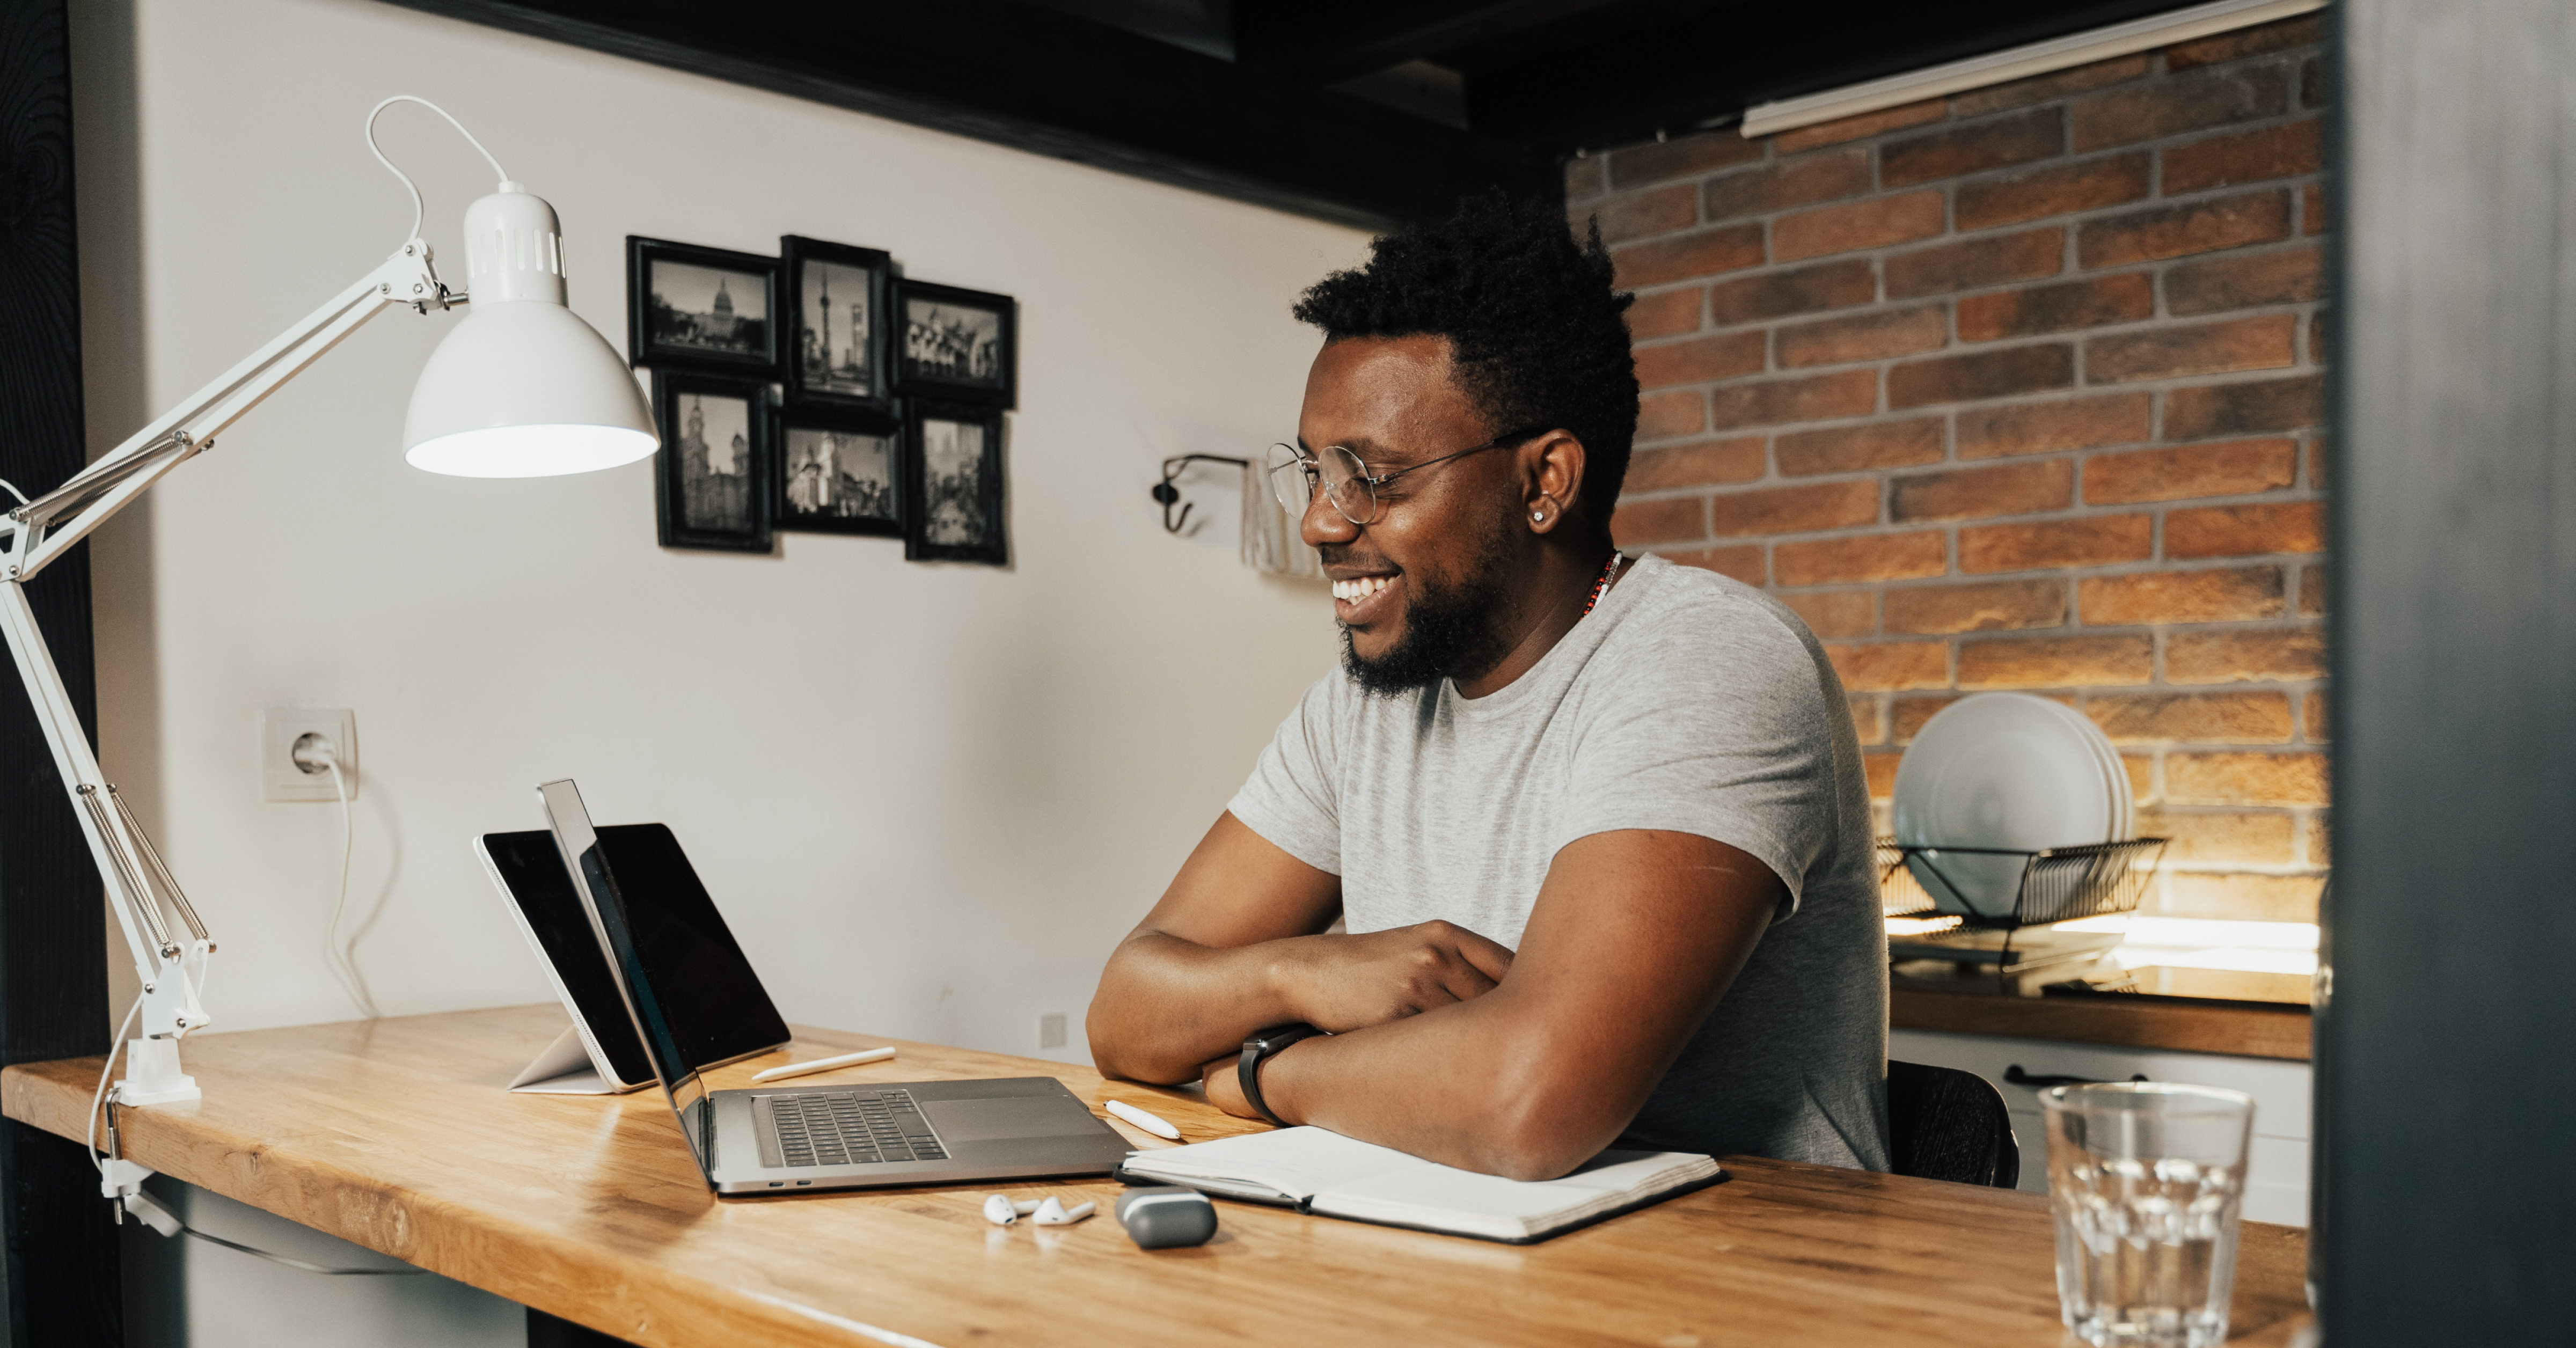 Man working at desk, home office